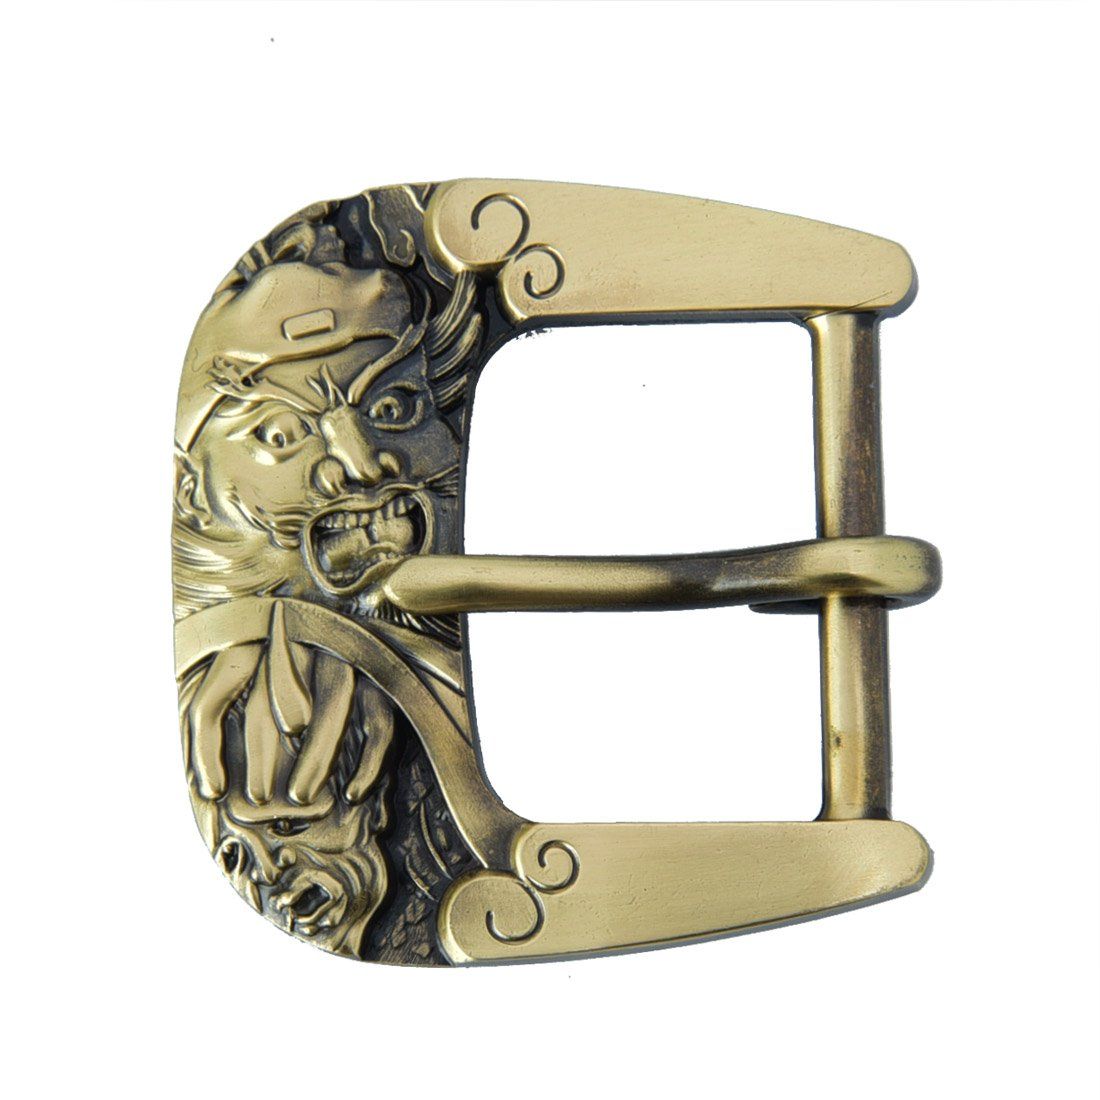 Talleffort Belt Buckle 1-1/2 Solid Brass SBB-0015